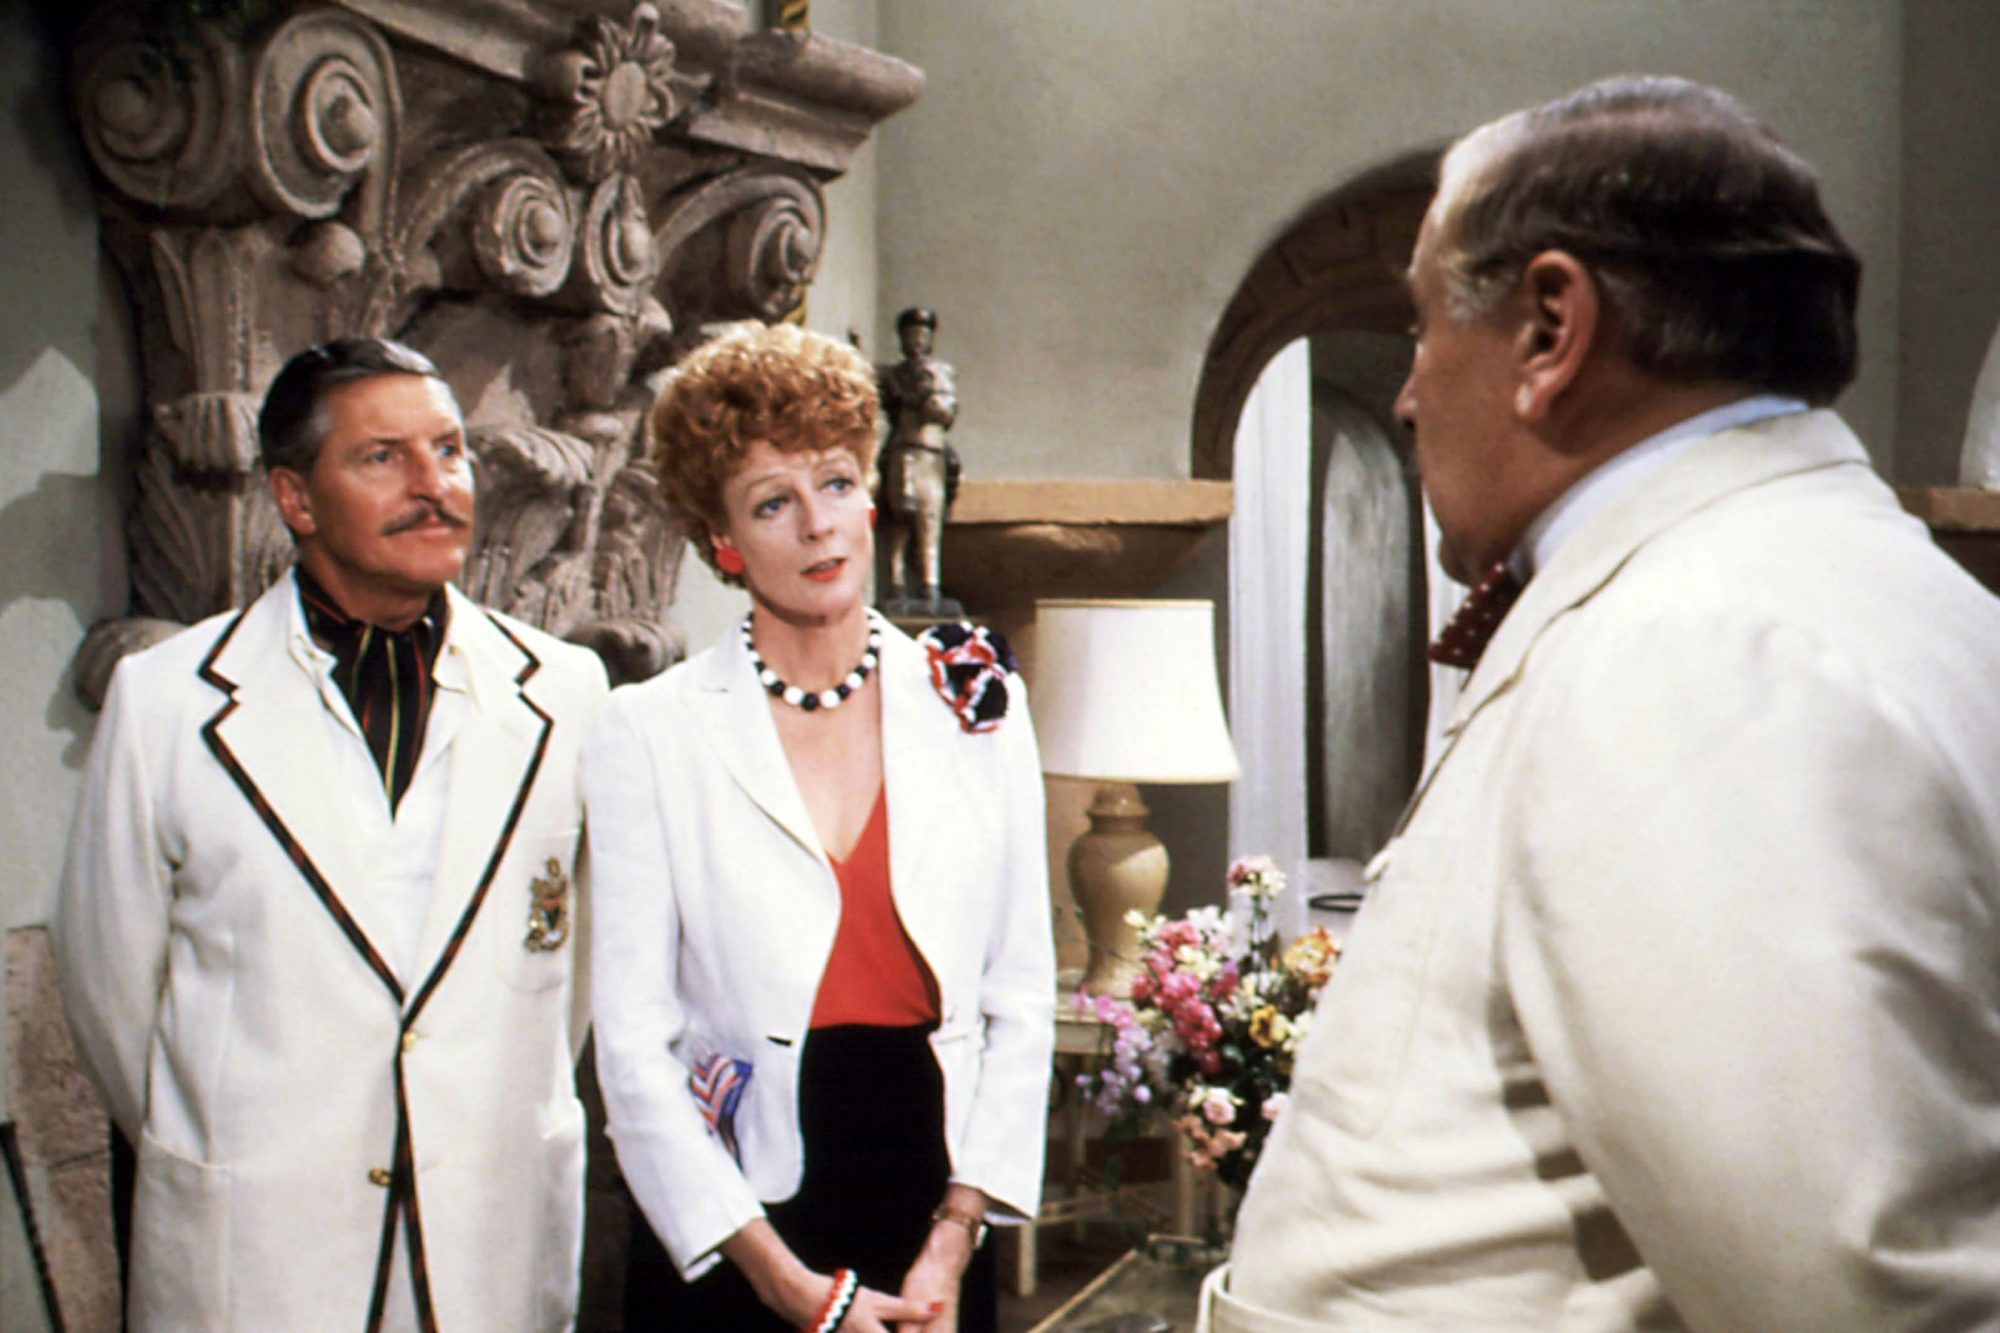 EVIL UNDER THE SUN, from left: Denis Quilley, Maggie Smith, Peter Ustinov, 1982, © Universal/courtes